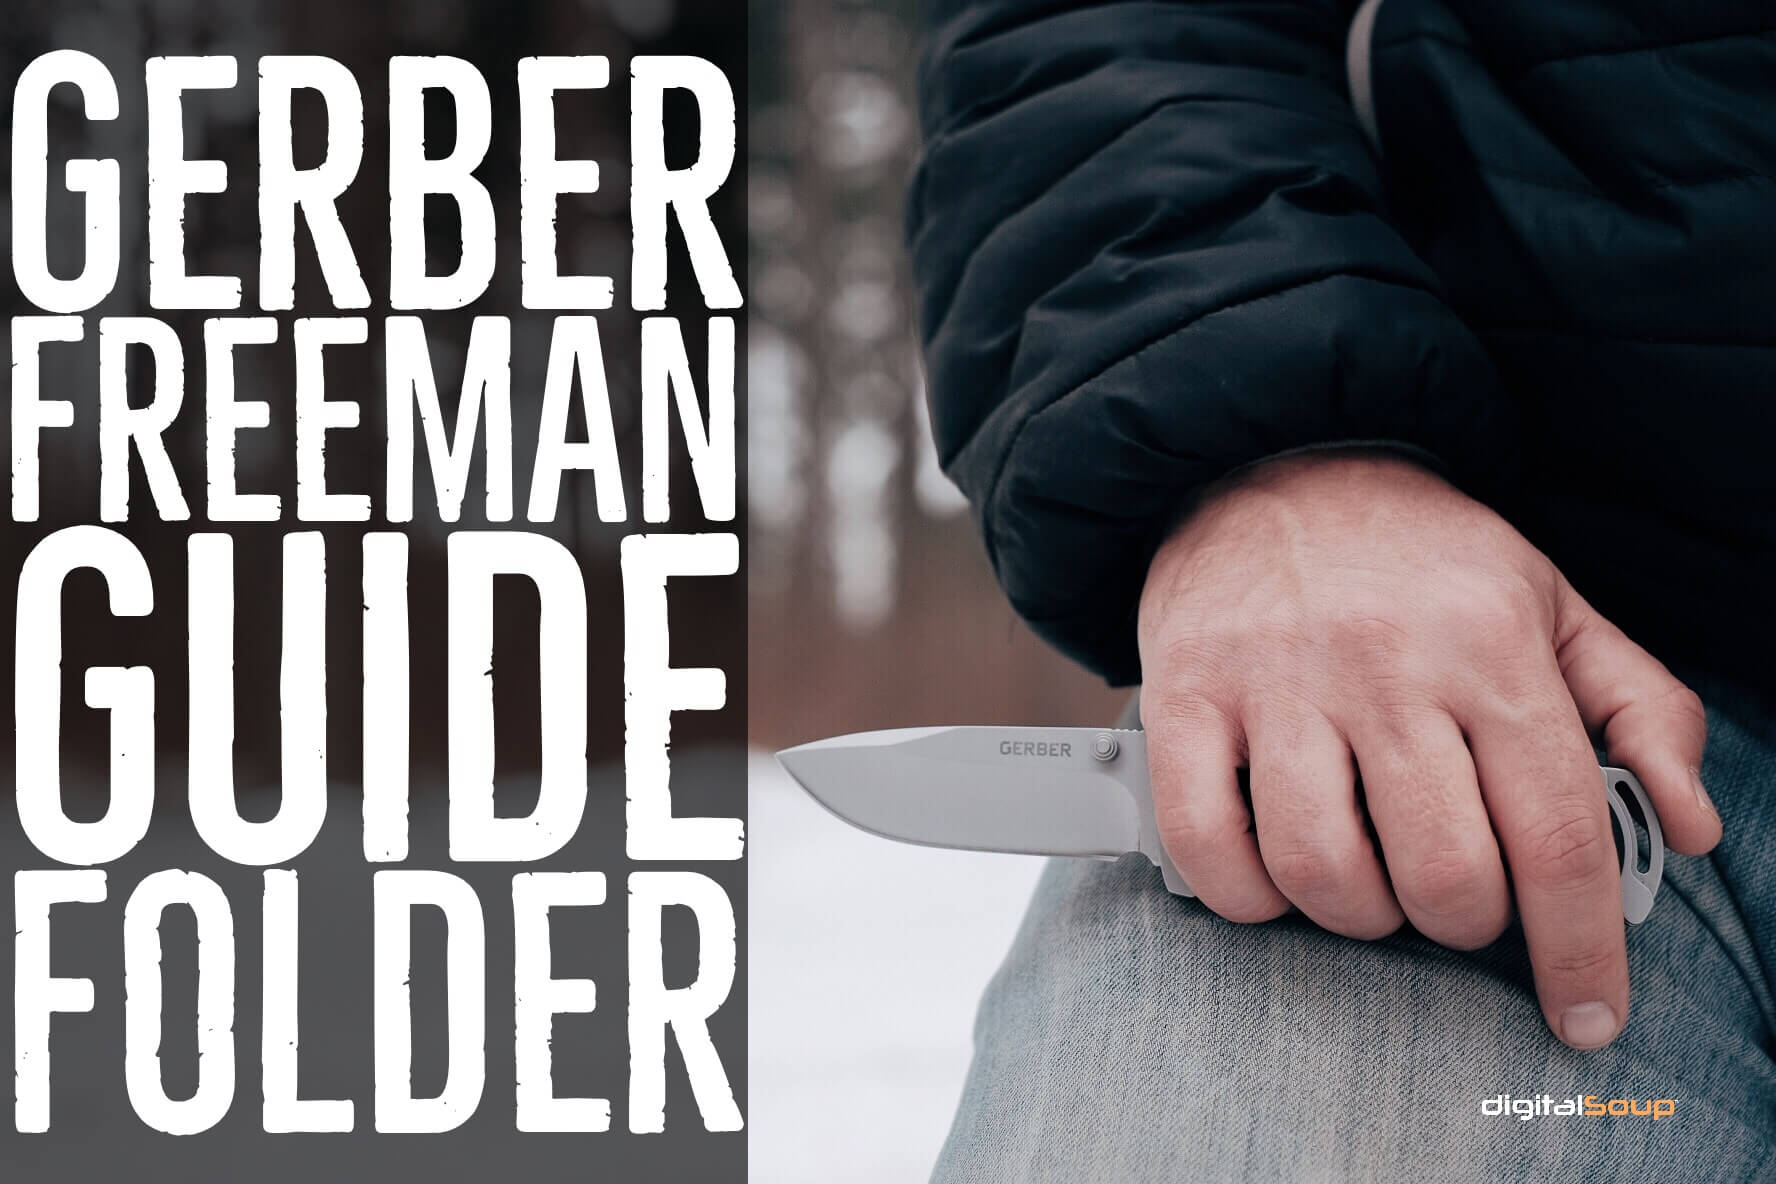 Gerber Freeman Guide Folder – The Review